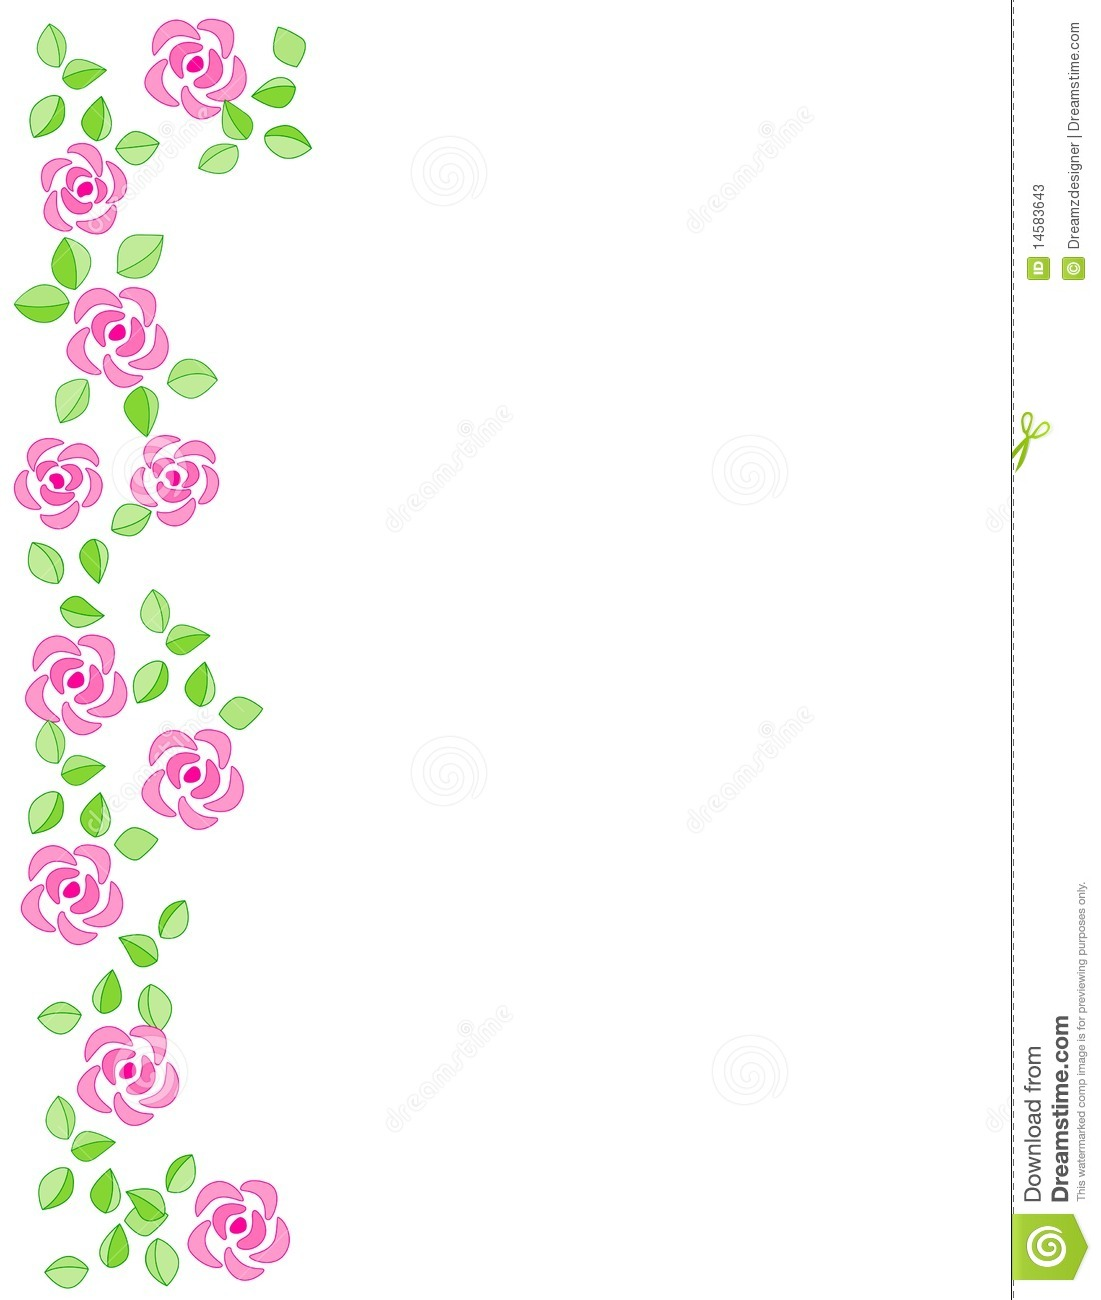 Cute Bordered Pastel Flower Wallpaper Rose Border Wedding Invitation Stock Vector Image